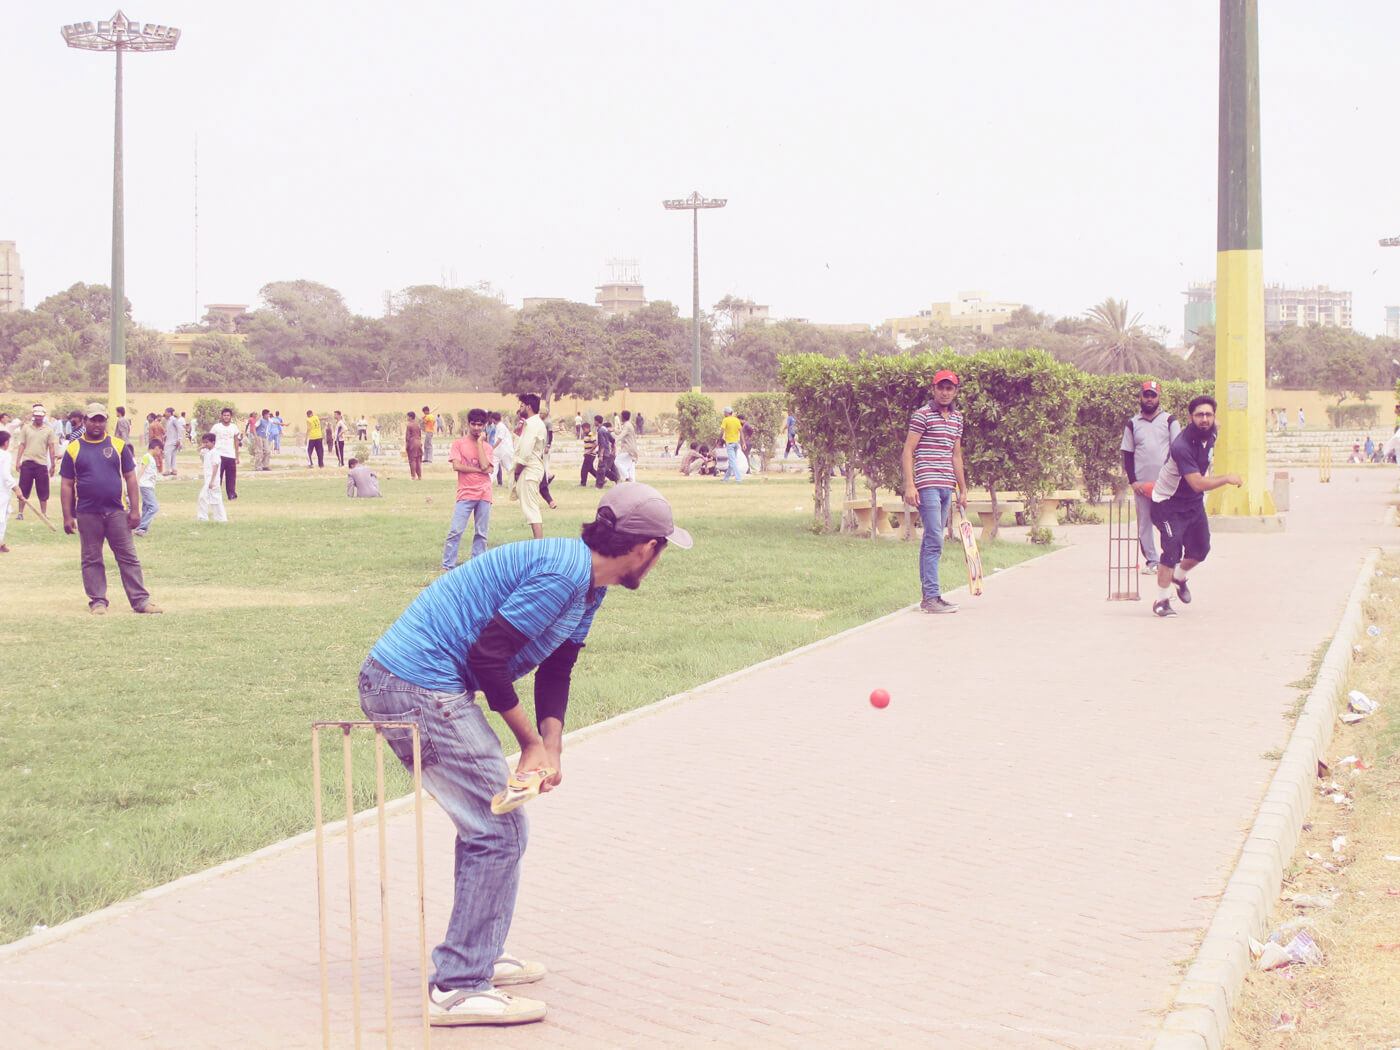 No walking, please: the renovated Polo Ground often holds 500 players, taking up every inch of space